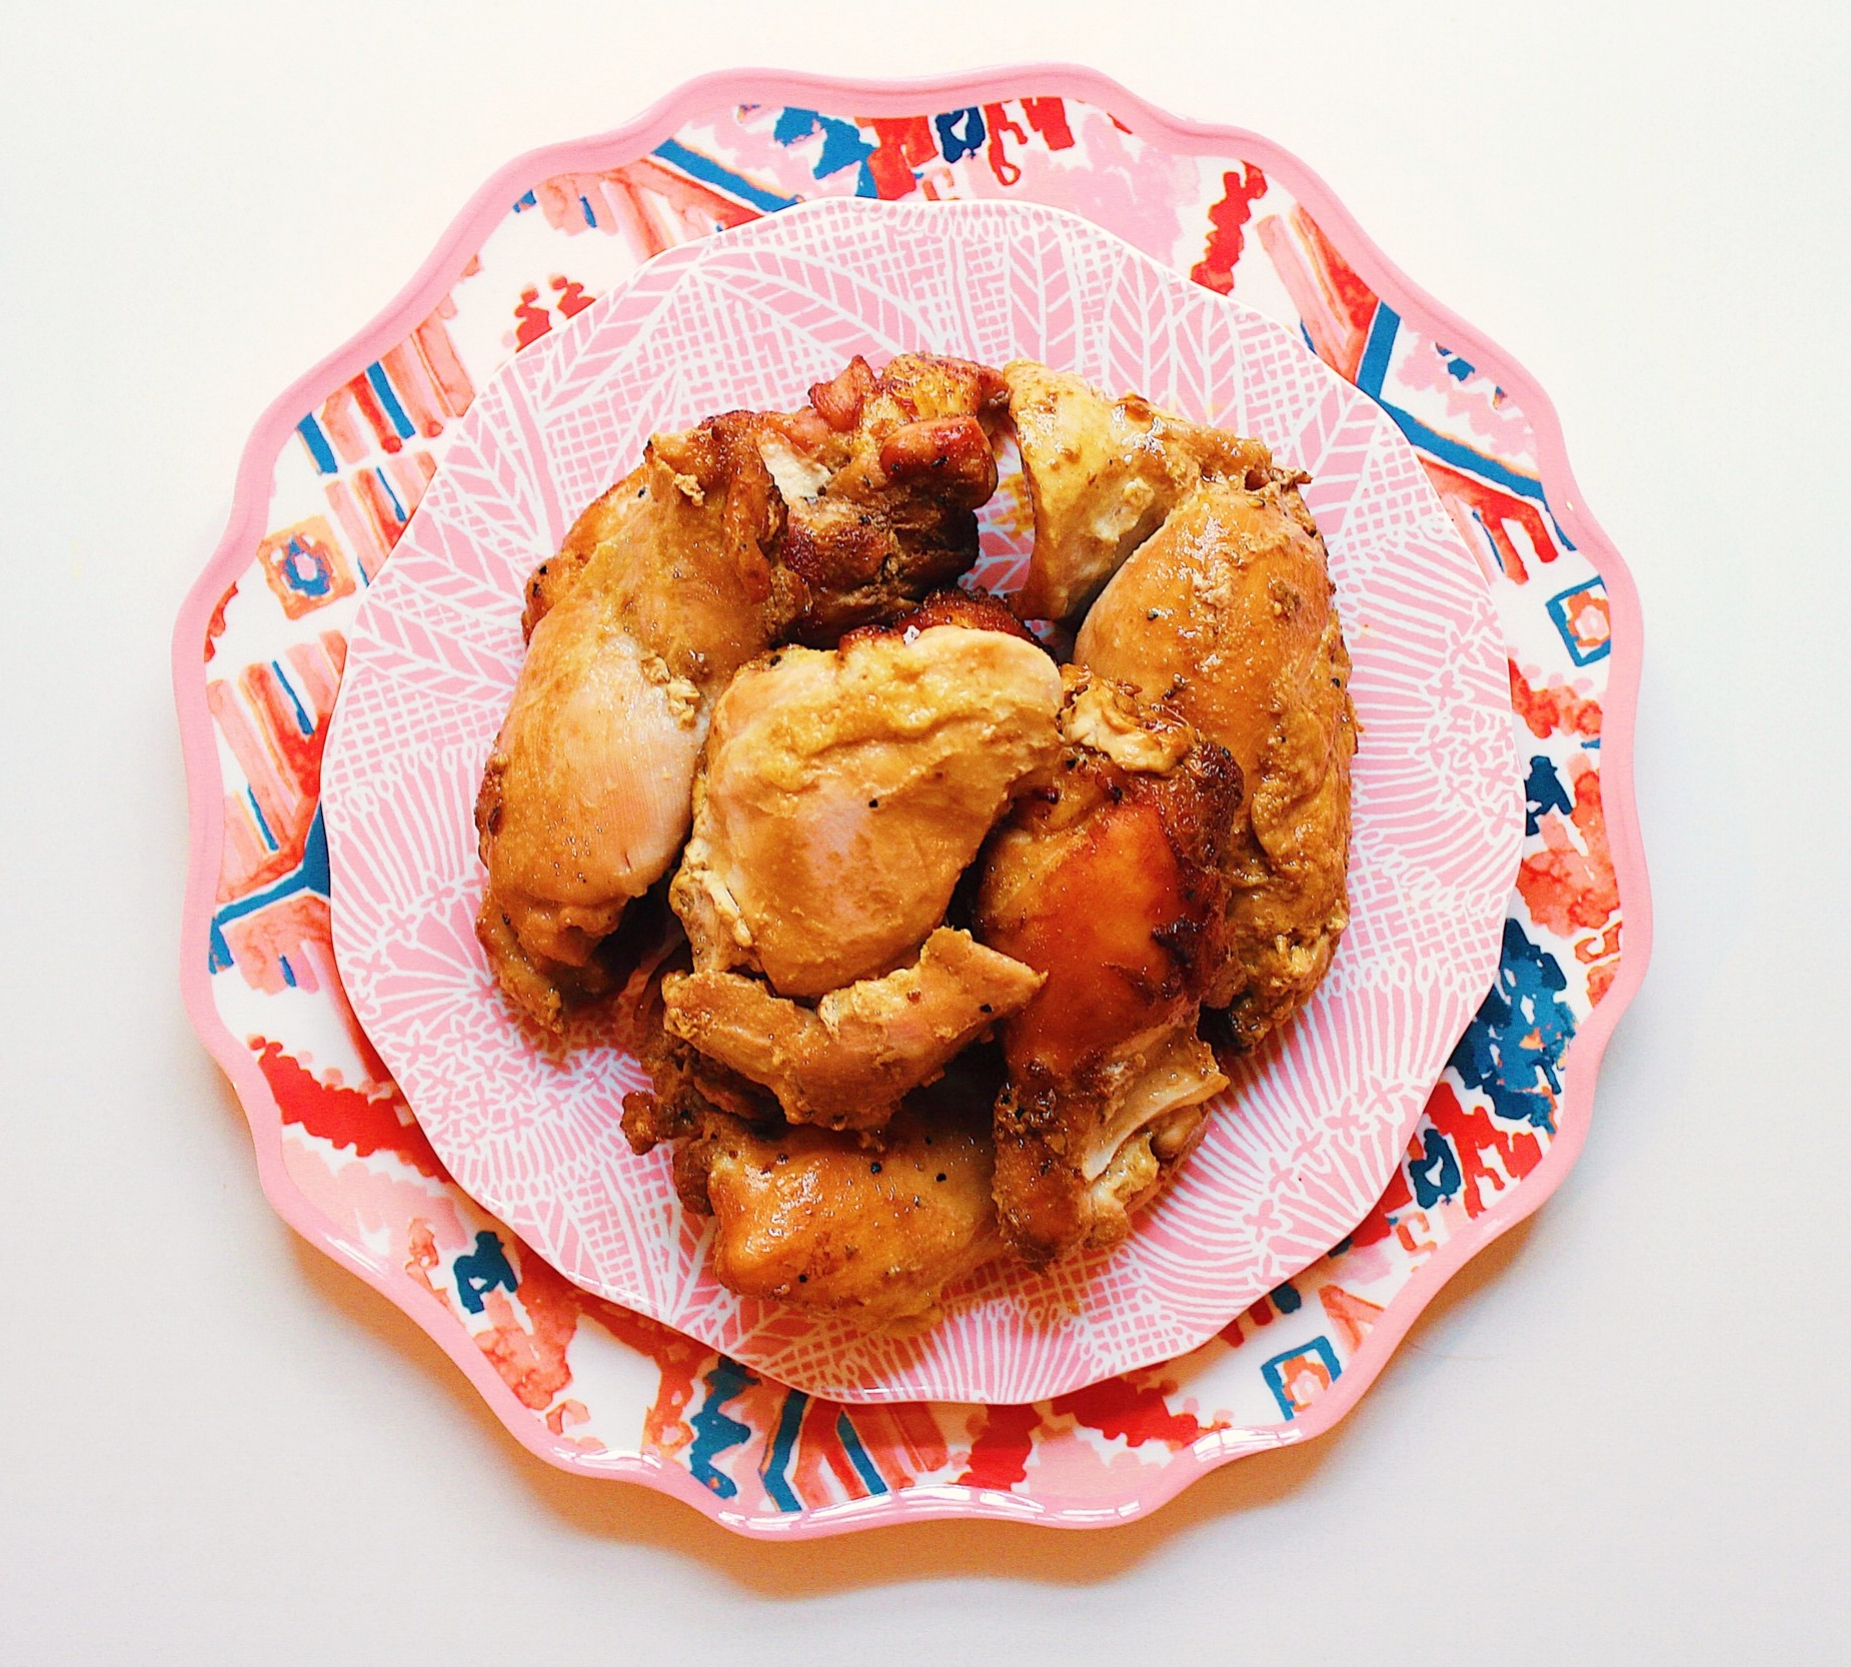 Chicken thighs recipe - All in with Angie